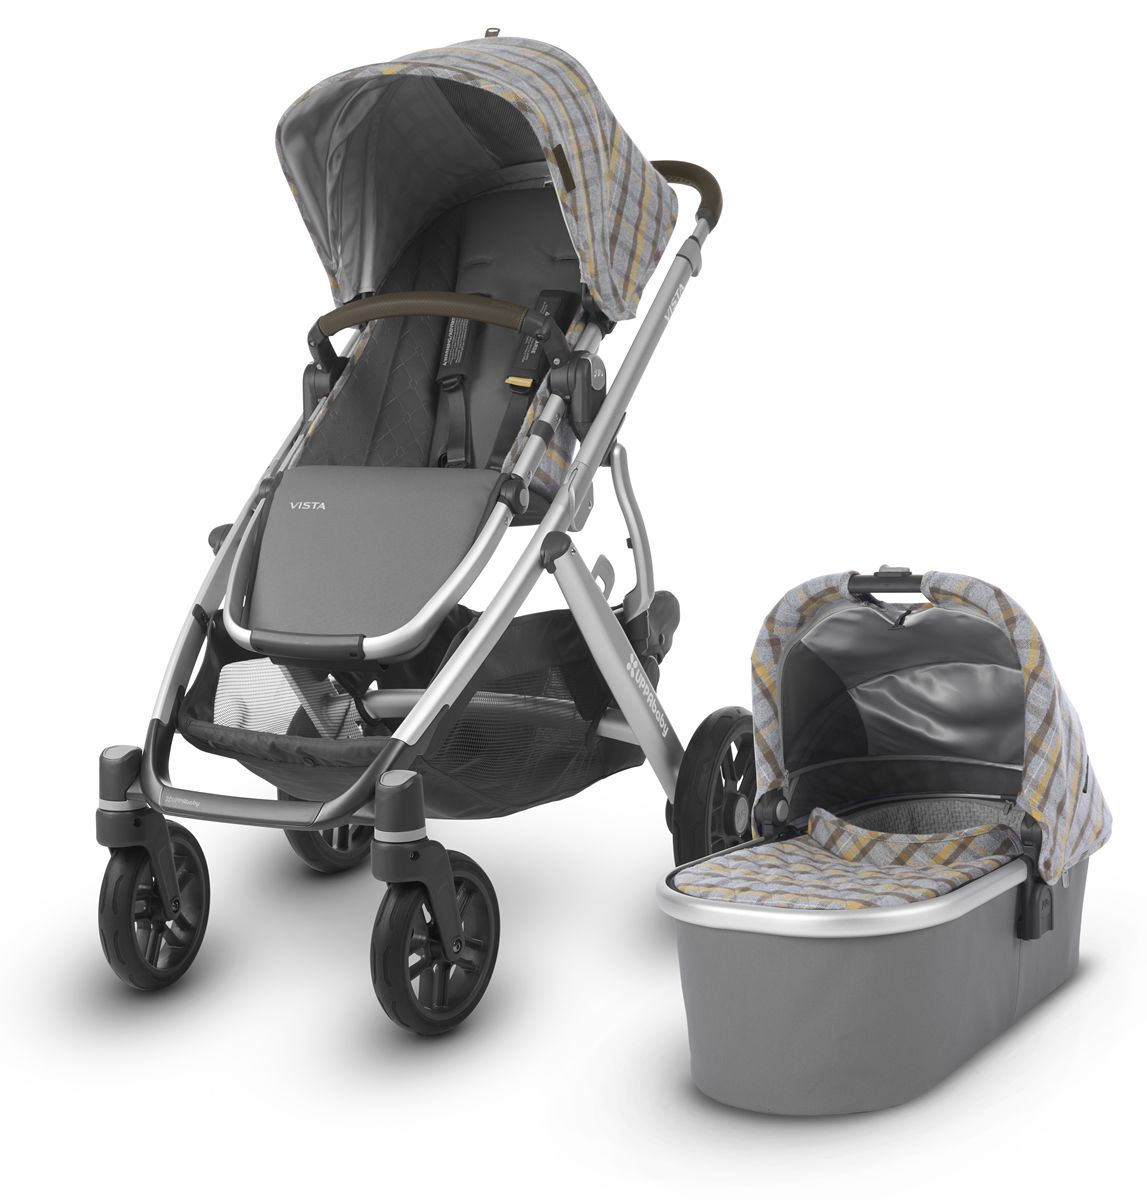 Uppababy 2019 Vista Stroller Spenser Grey Yellow Tartan Silver Moss Leather